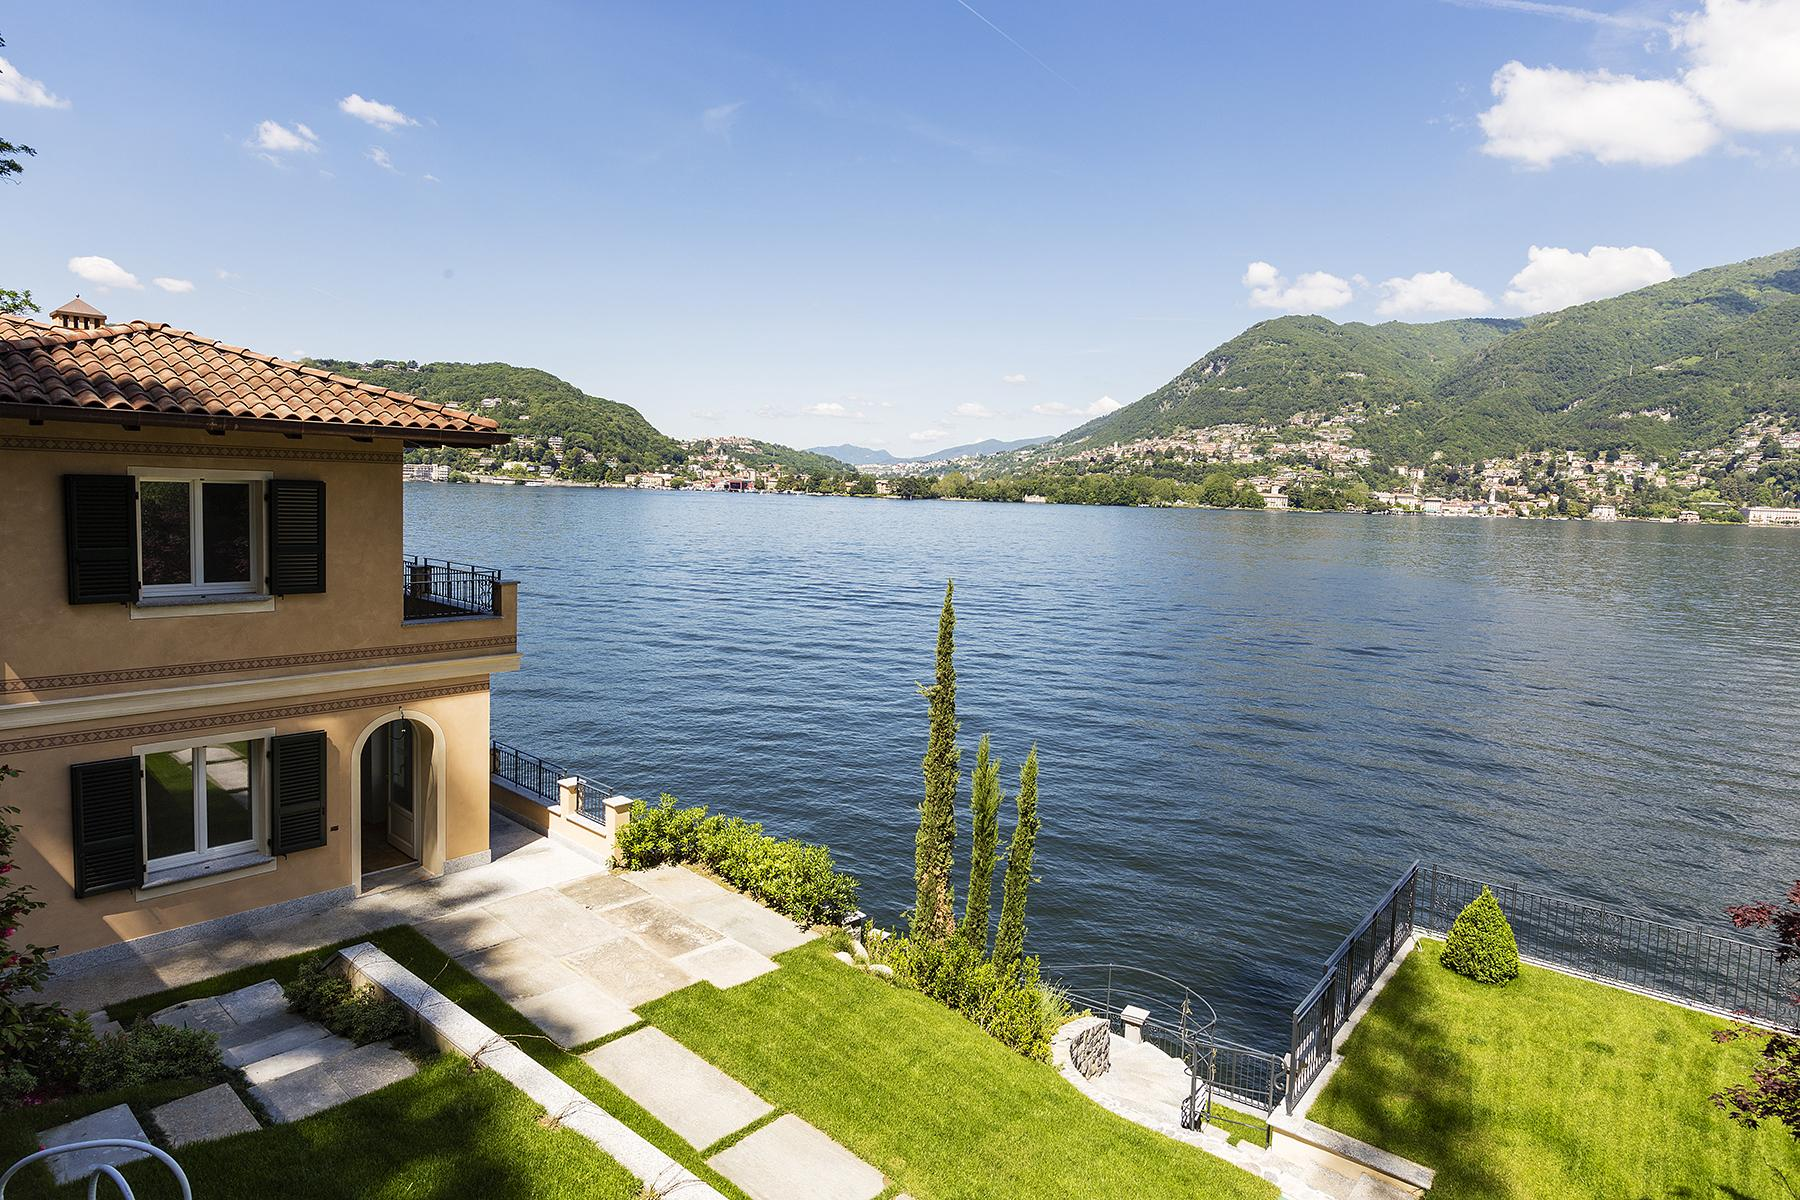 Fascinating villa in one of the most strategic areas of the lake - 2